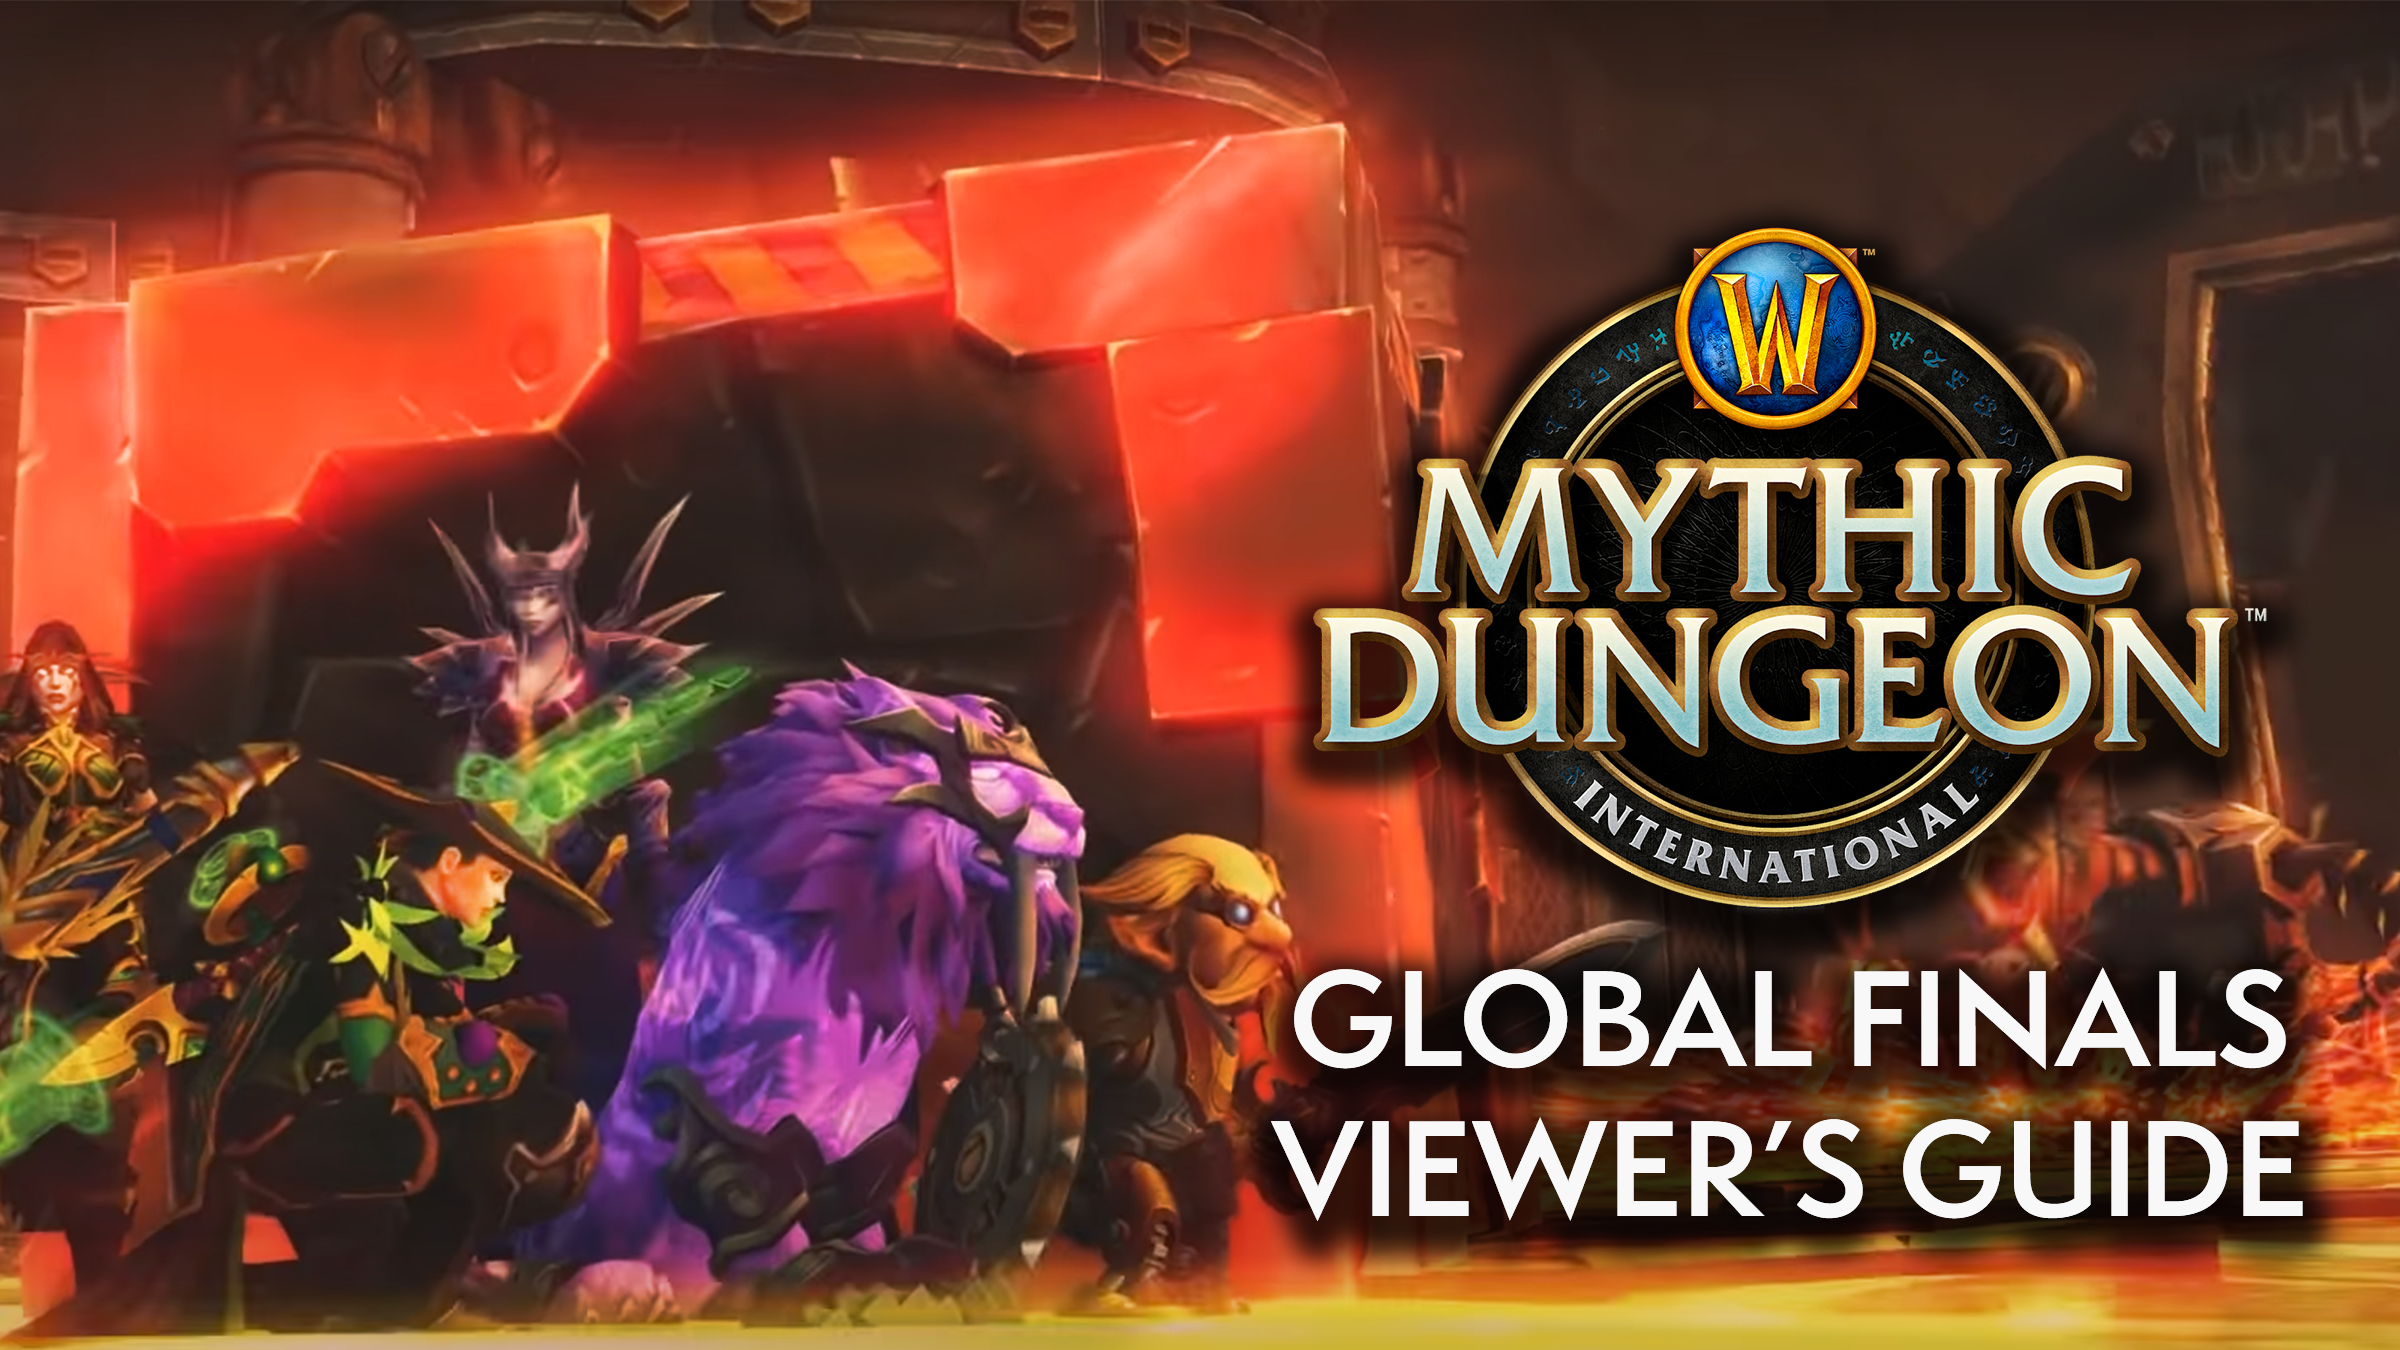 Viewer's Guide: Mythic Dungeon International Global Finals!